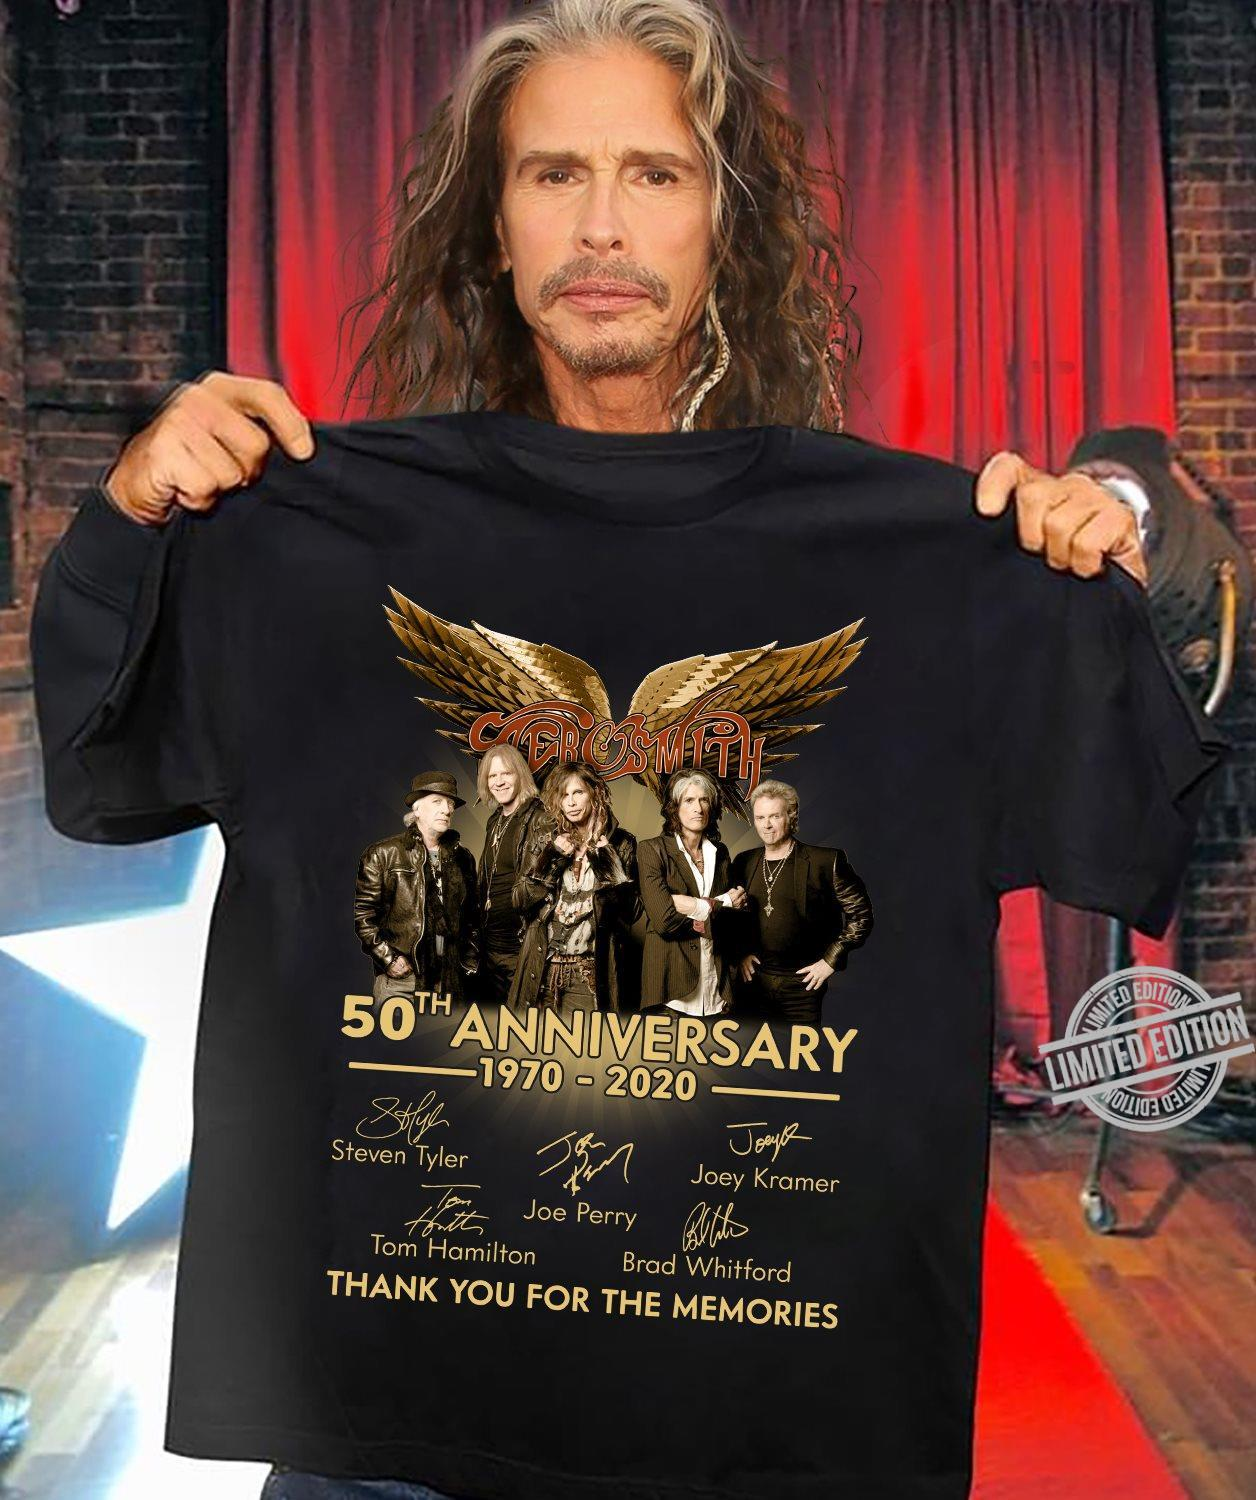 50th Anniversary Thank You For The Memories Shirt